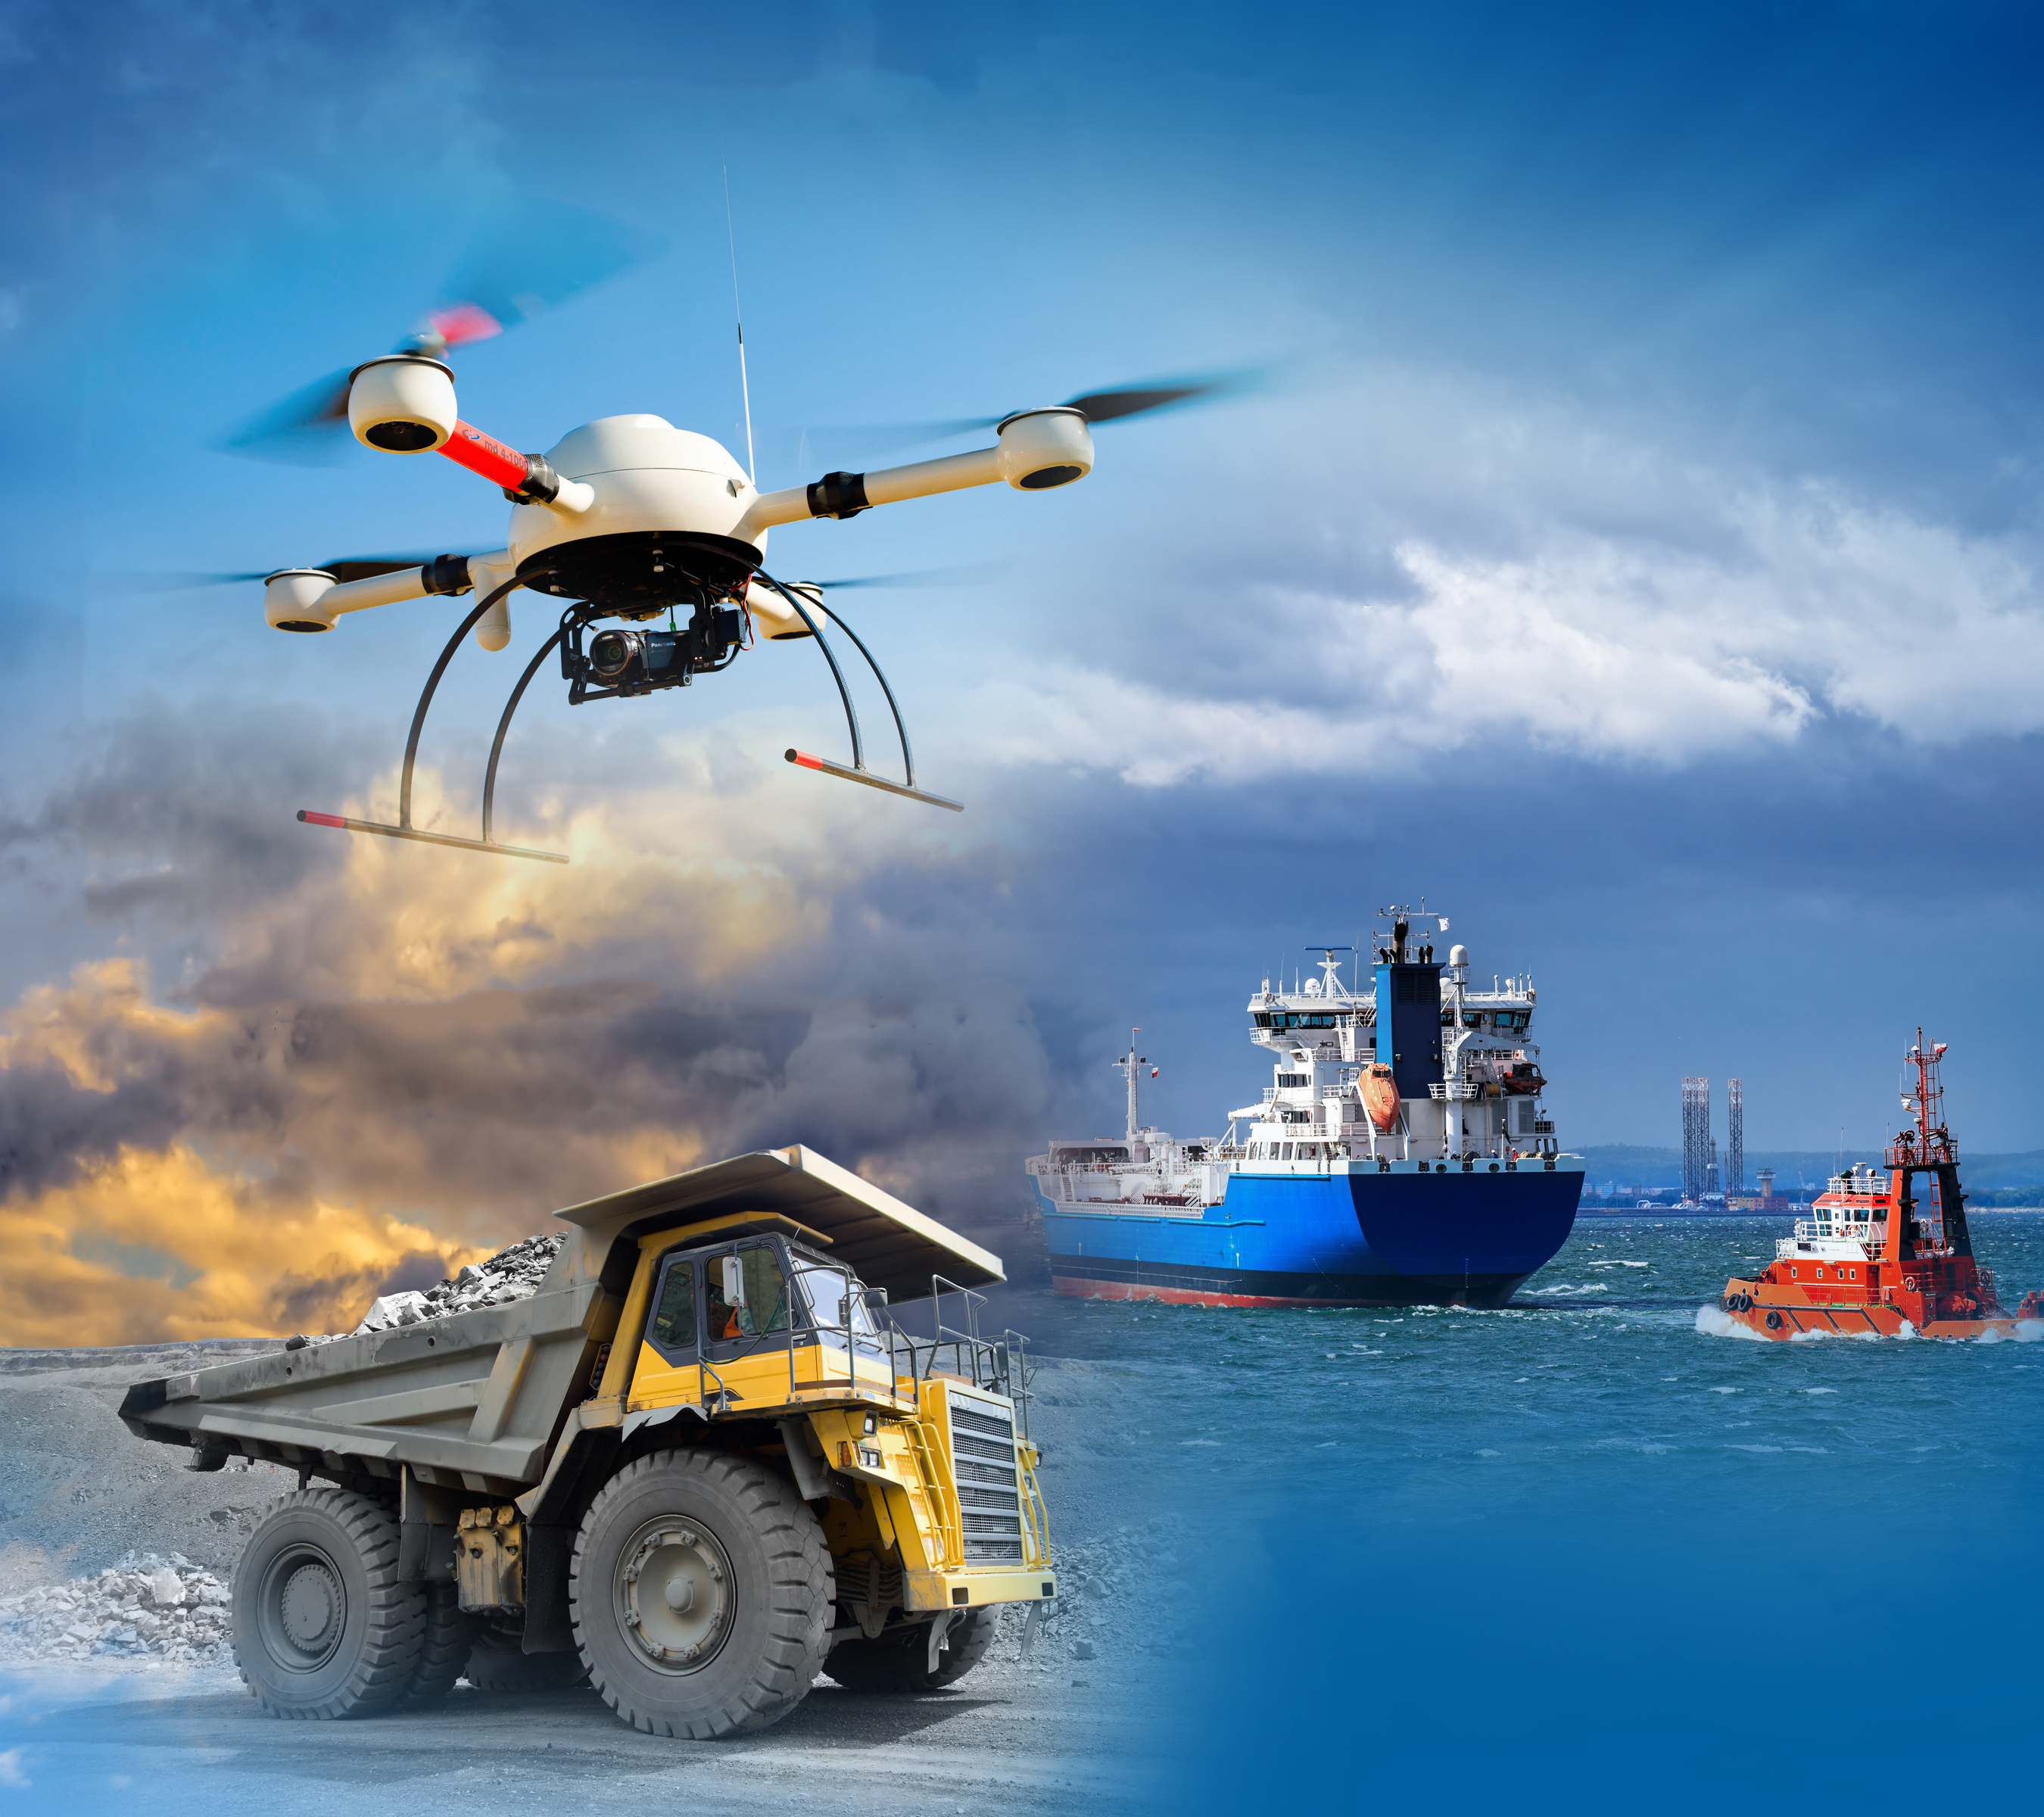 Applanix applications comparing manned versus unmanned surveying publicscrutiny Choice Image